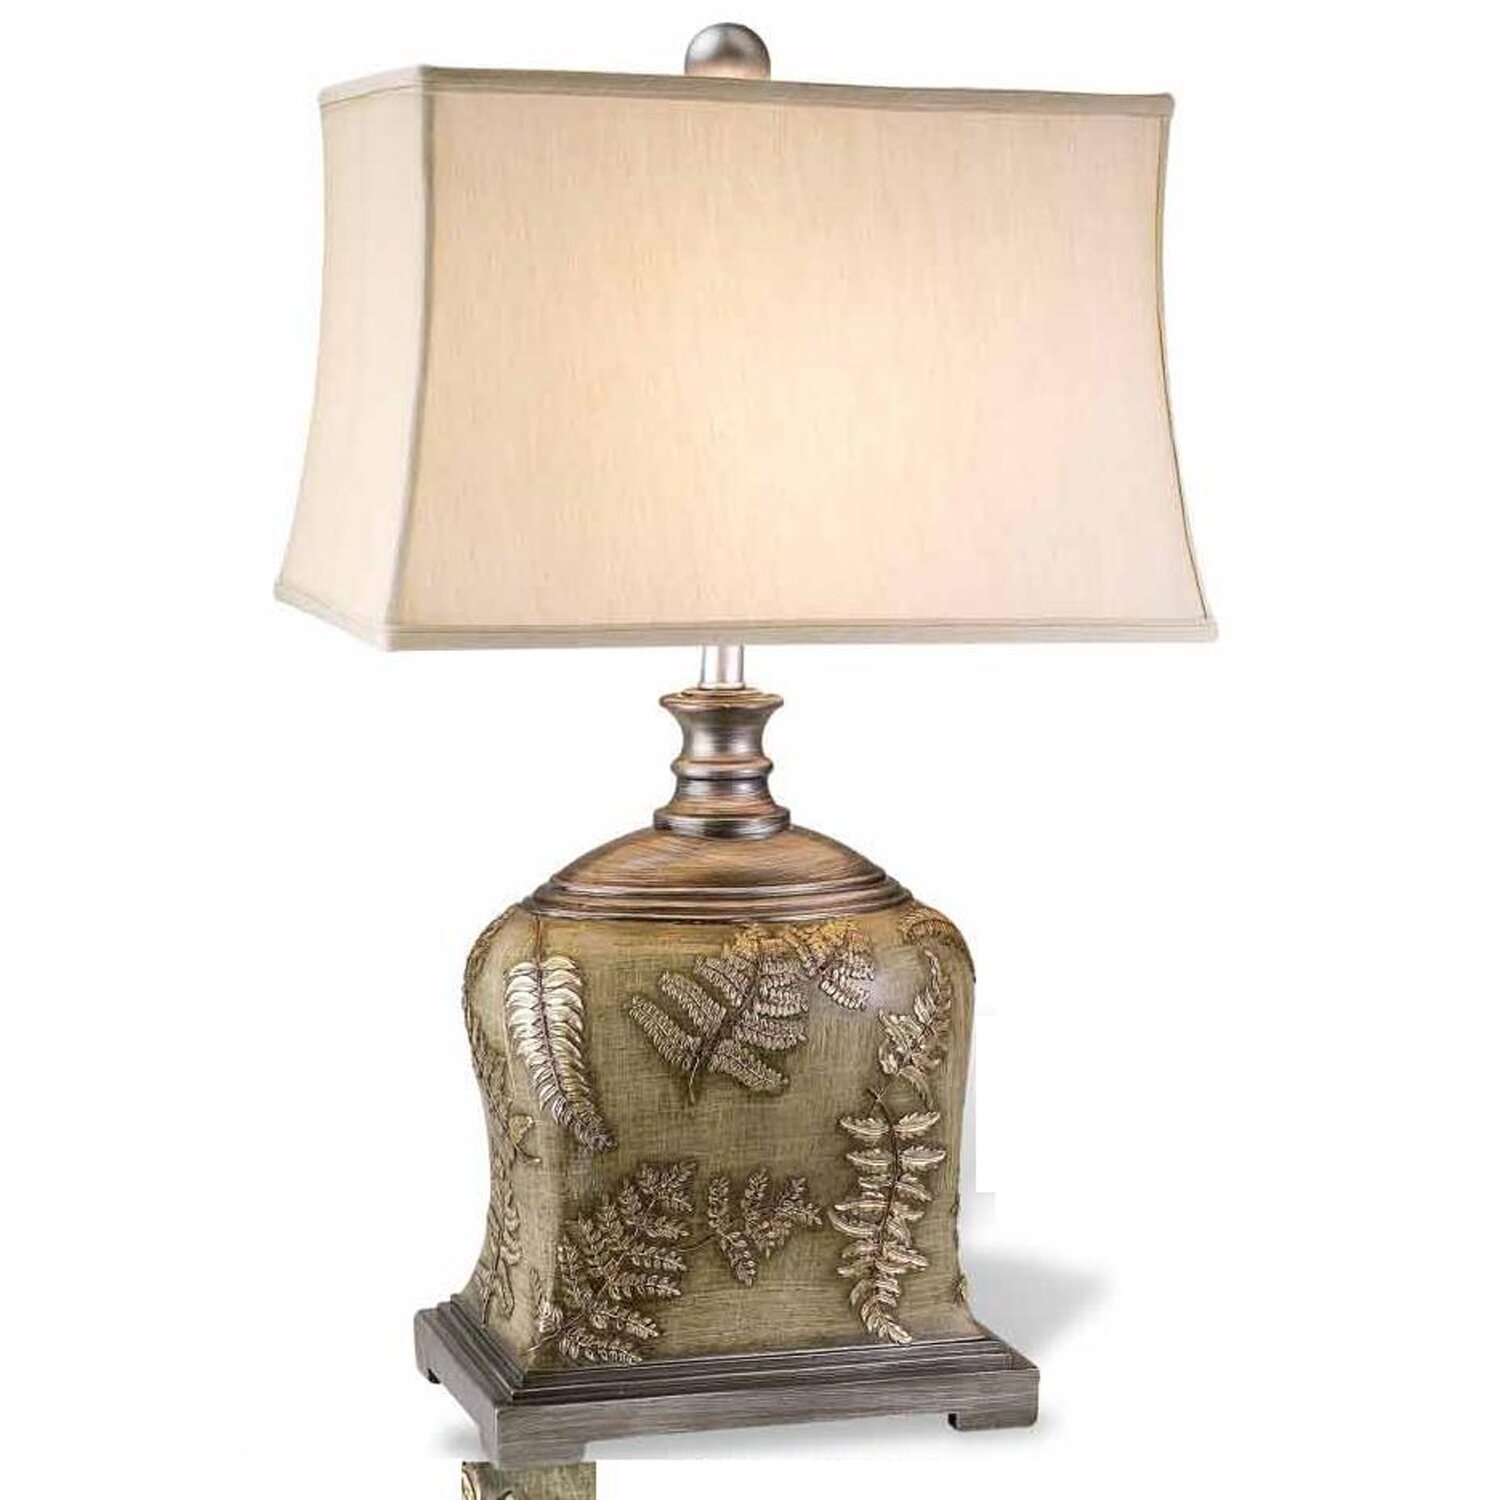 lighting lamps brown table lamps ore furniture sku ore2045. Black Bedroom Furniture Sets. Home Design Ideas